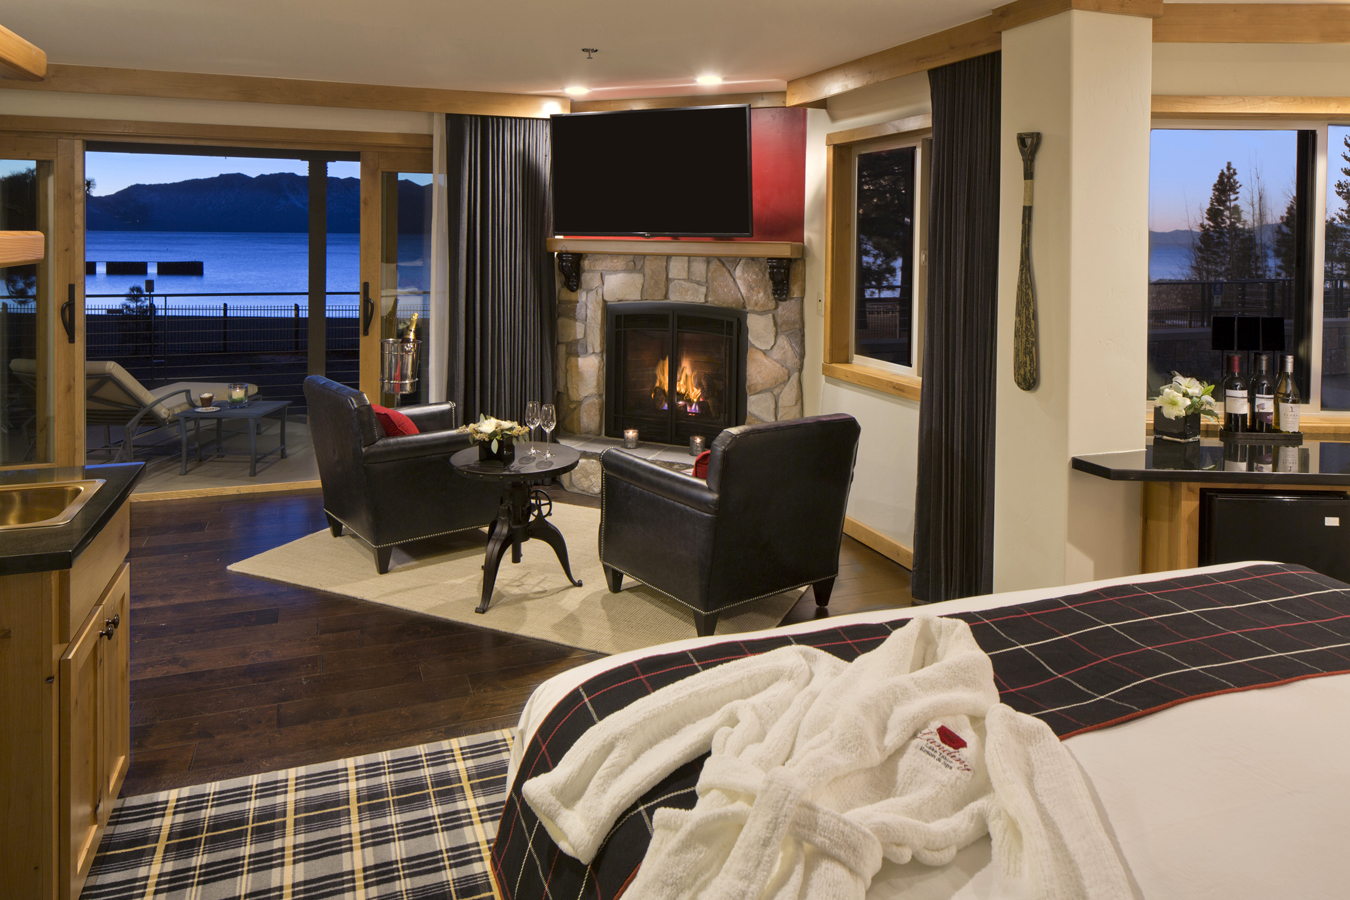 The landing resort spa on lake tahoe offers special for Spa weekend getaways for couples